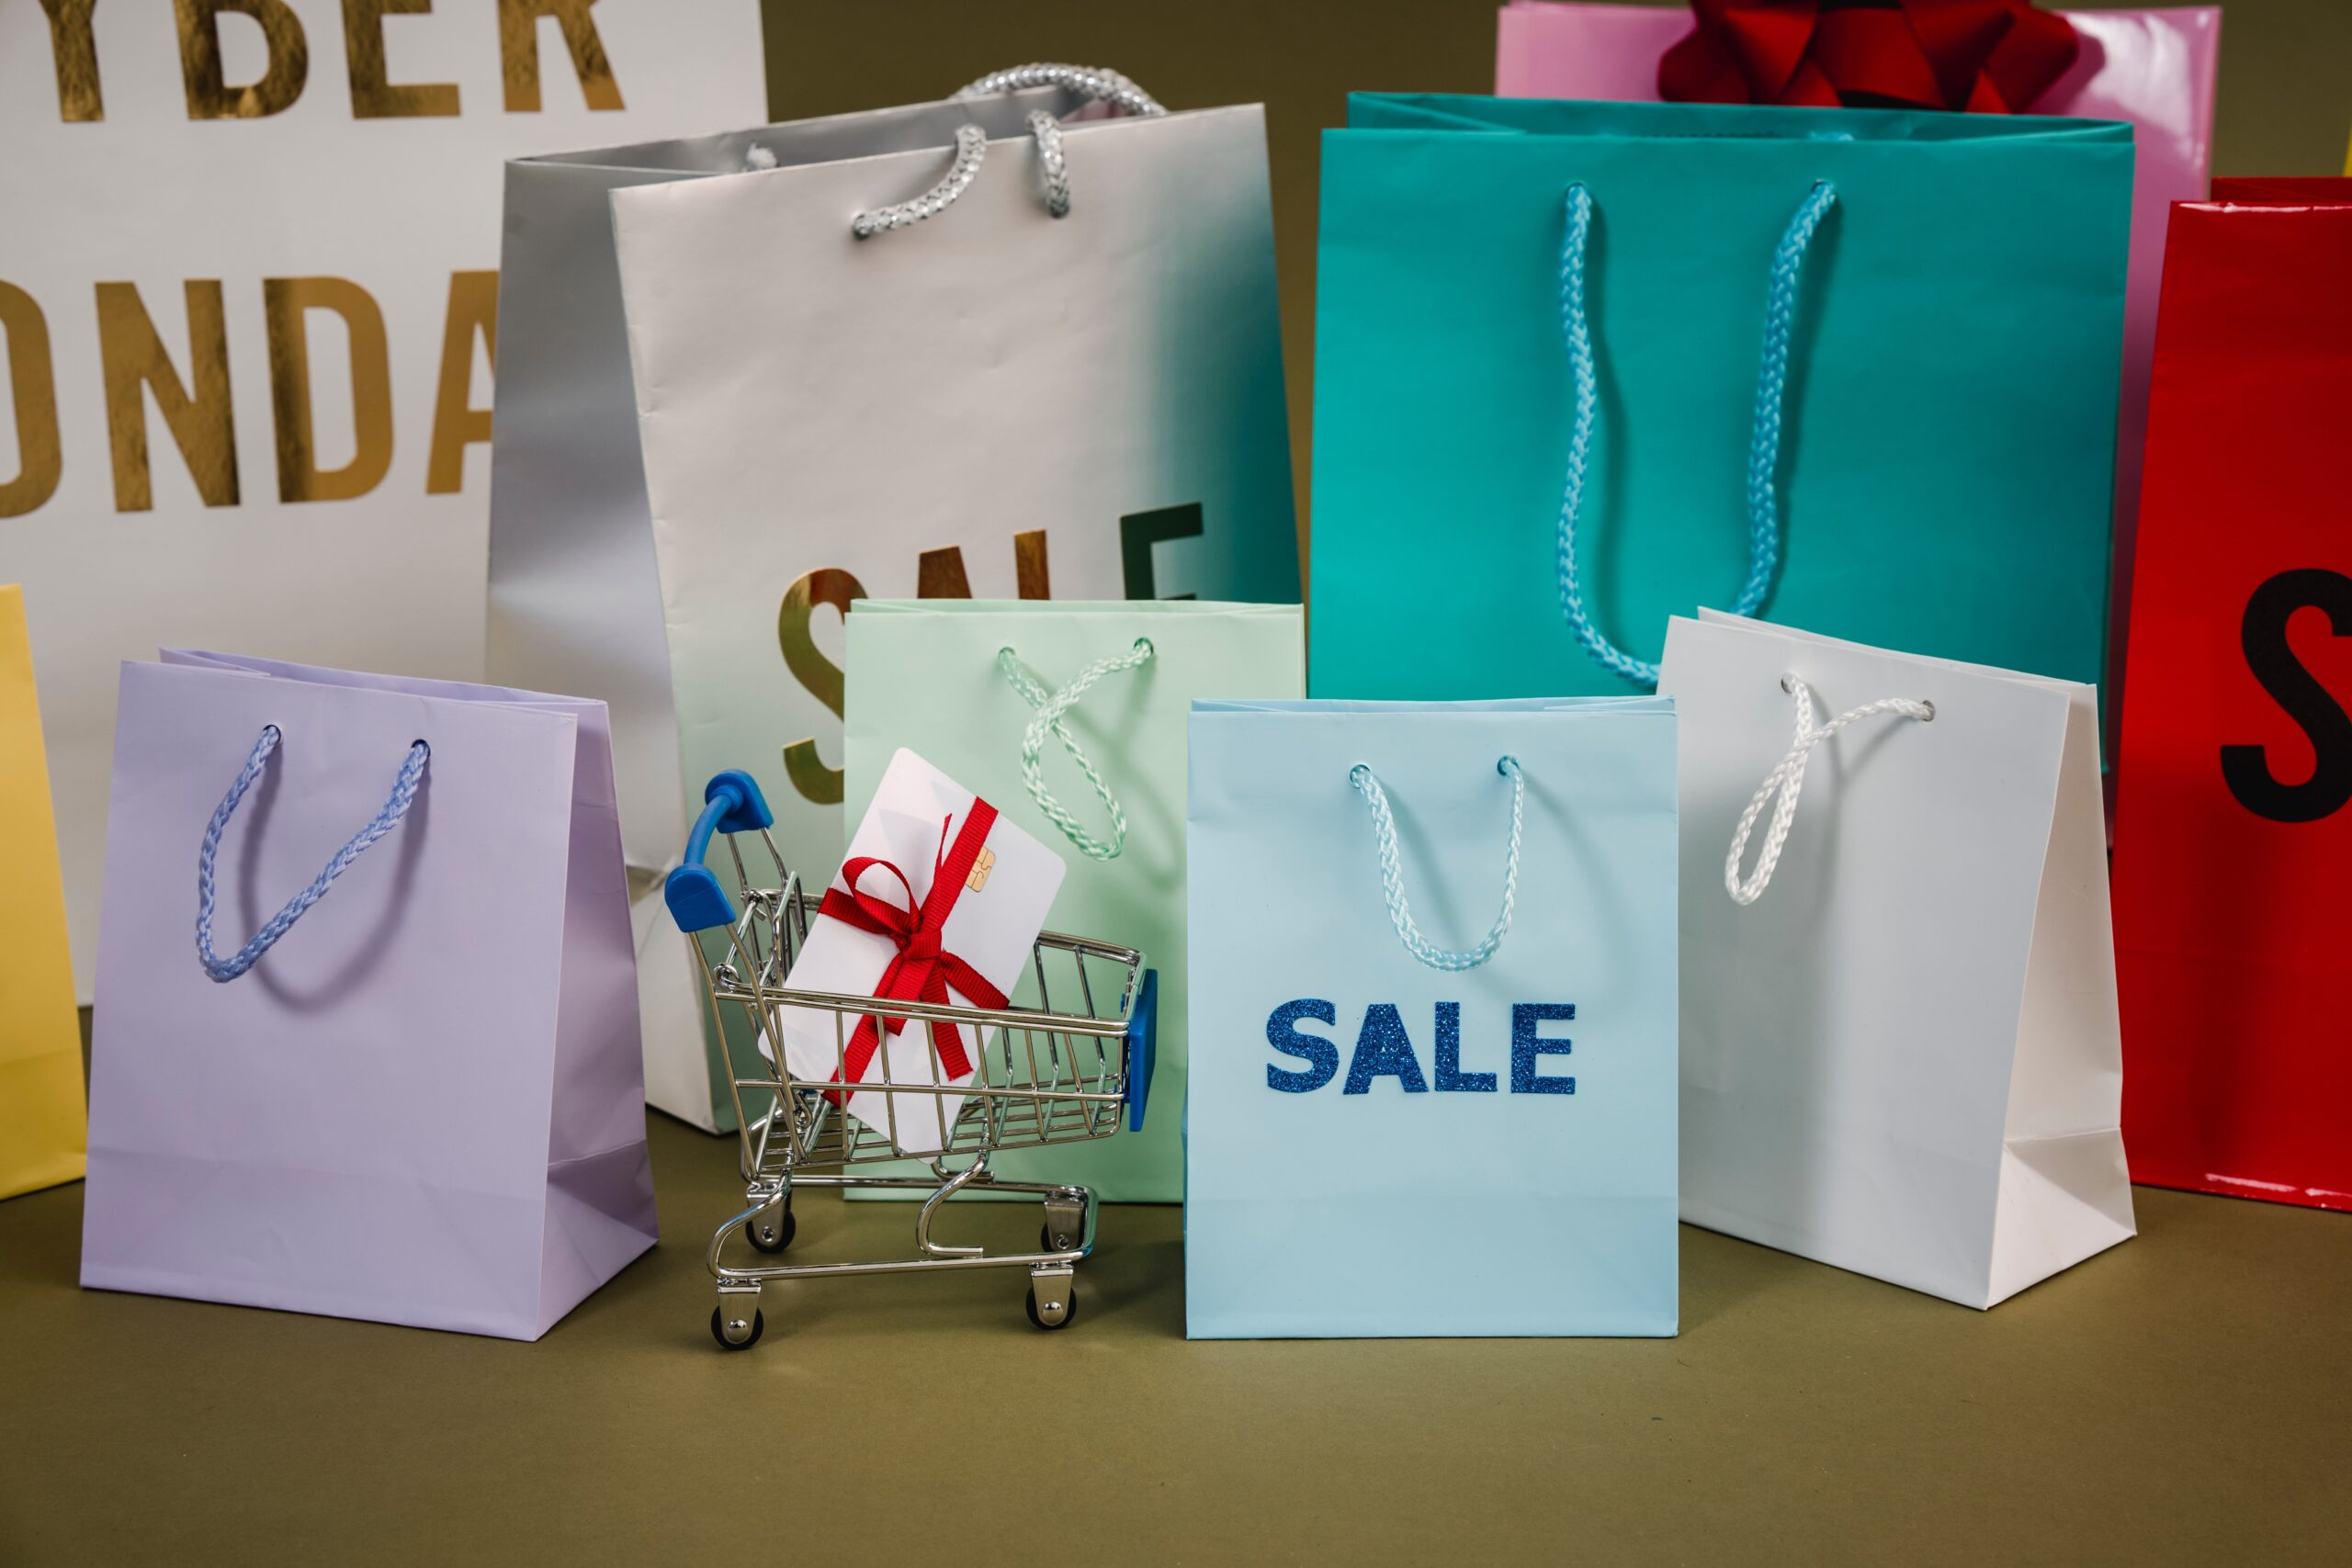 Shopping bags with sale written on them